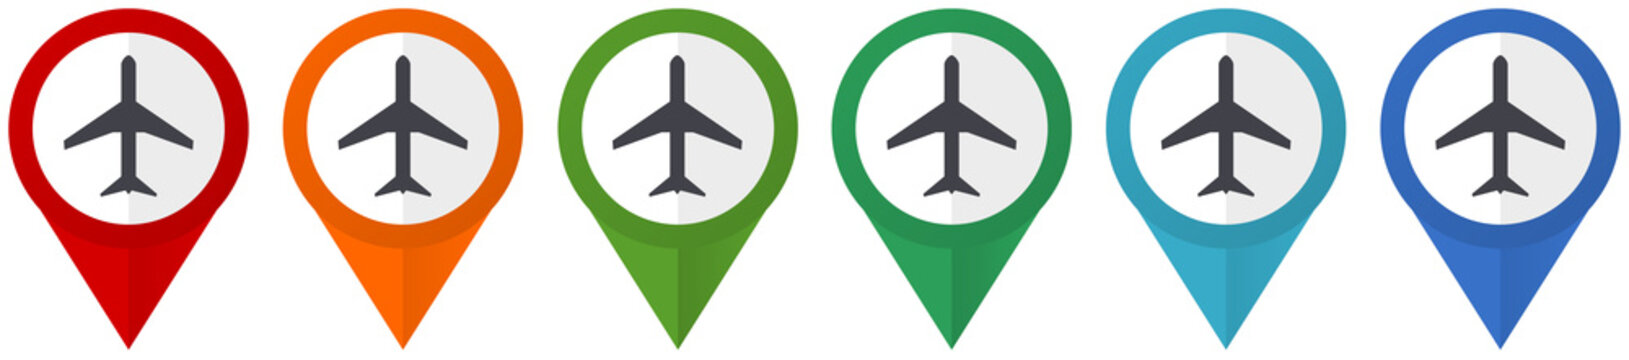 Plane, flight, airplane vector pointers, set of colorful flat design icons isolated on white background